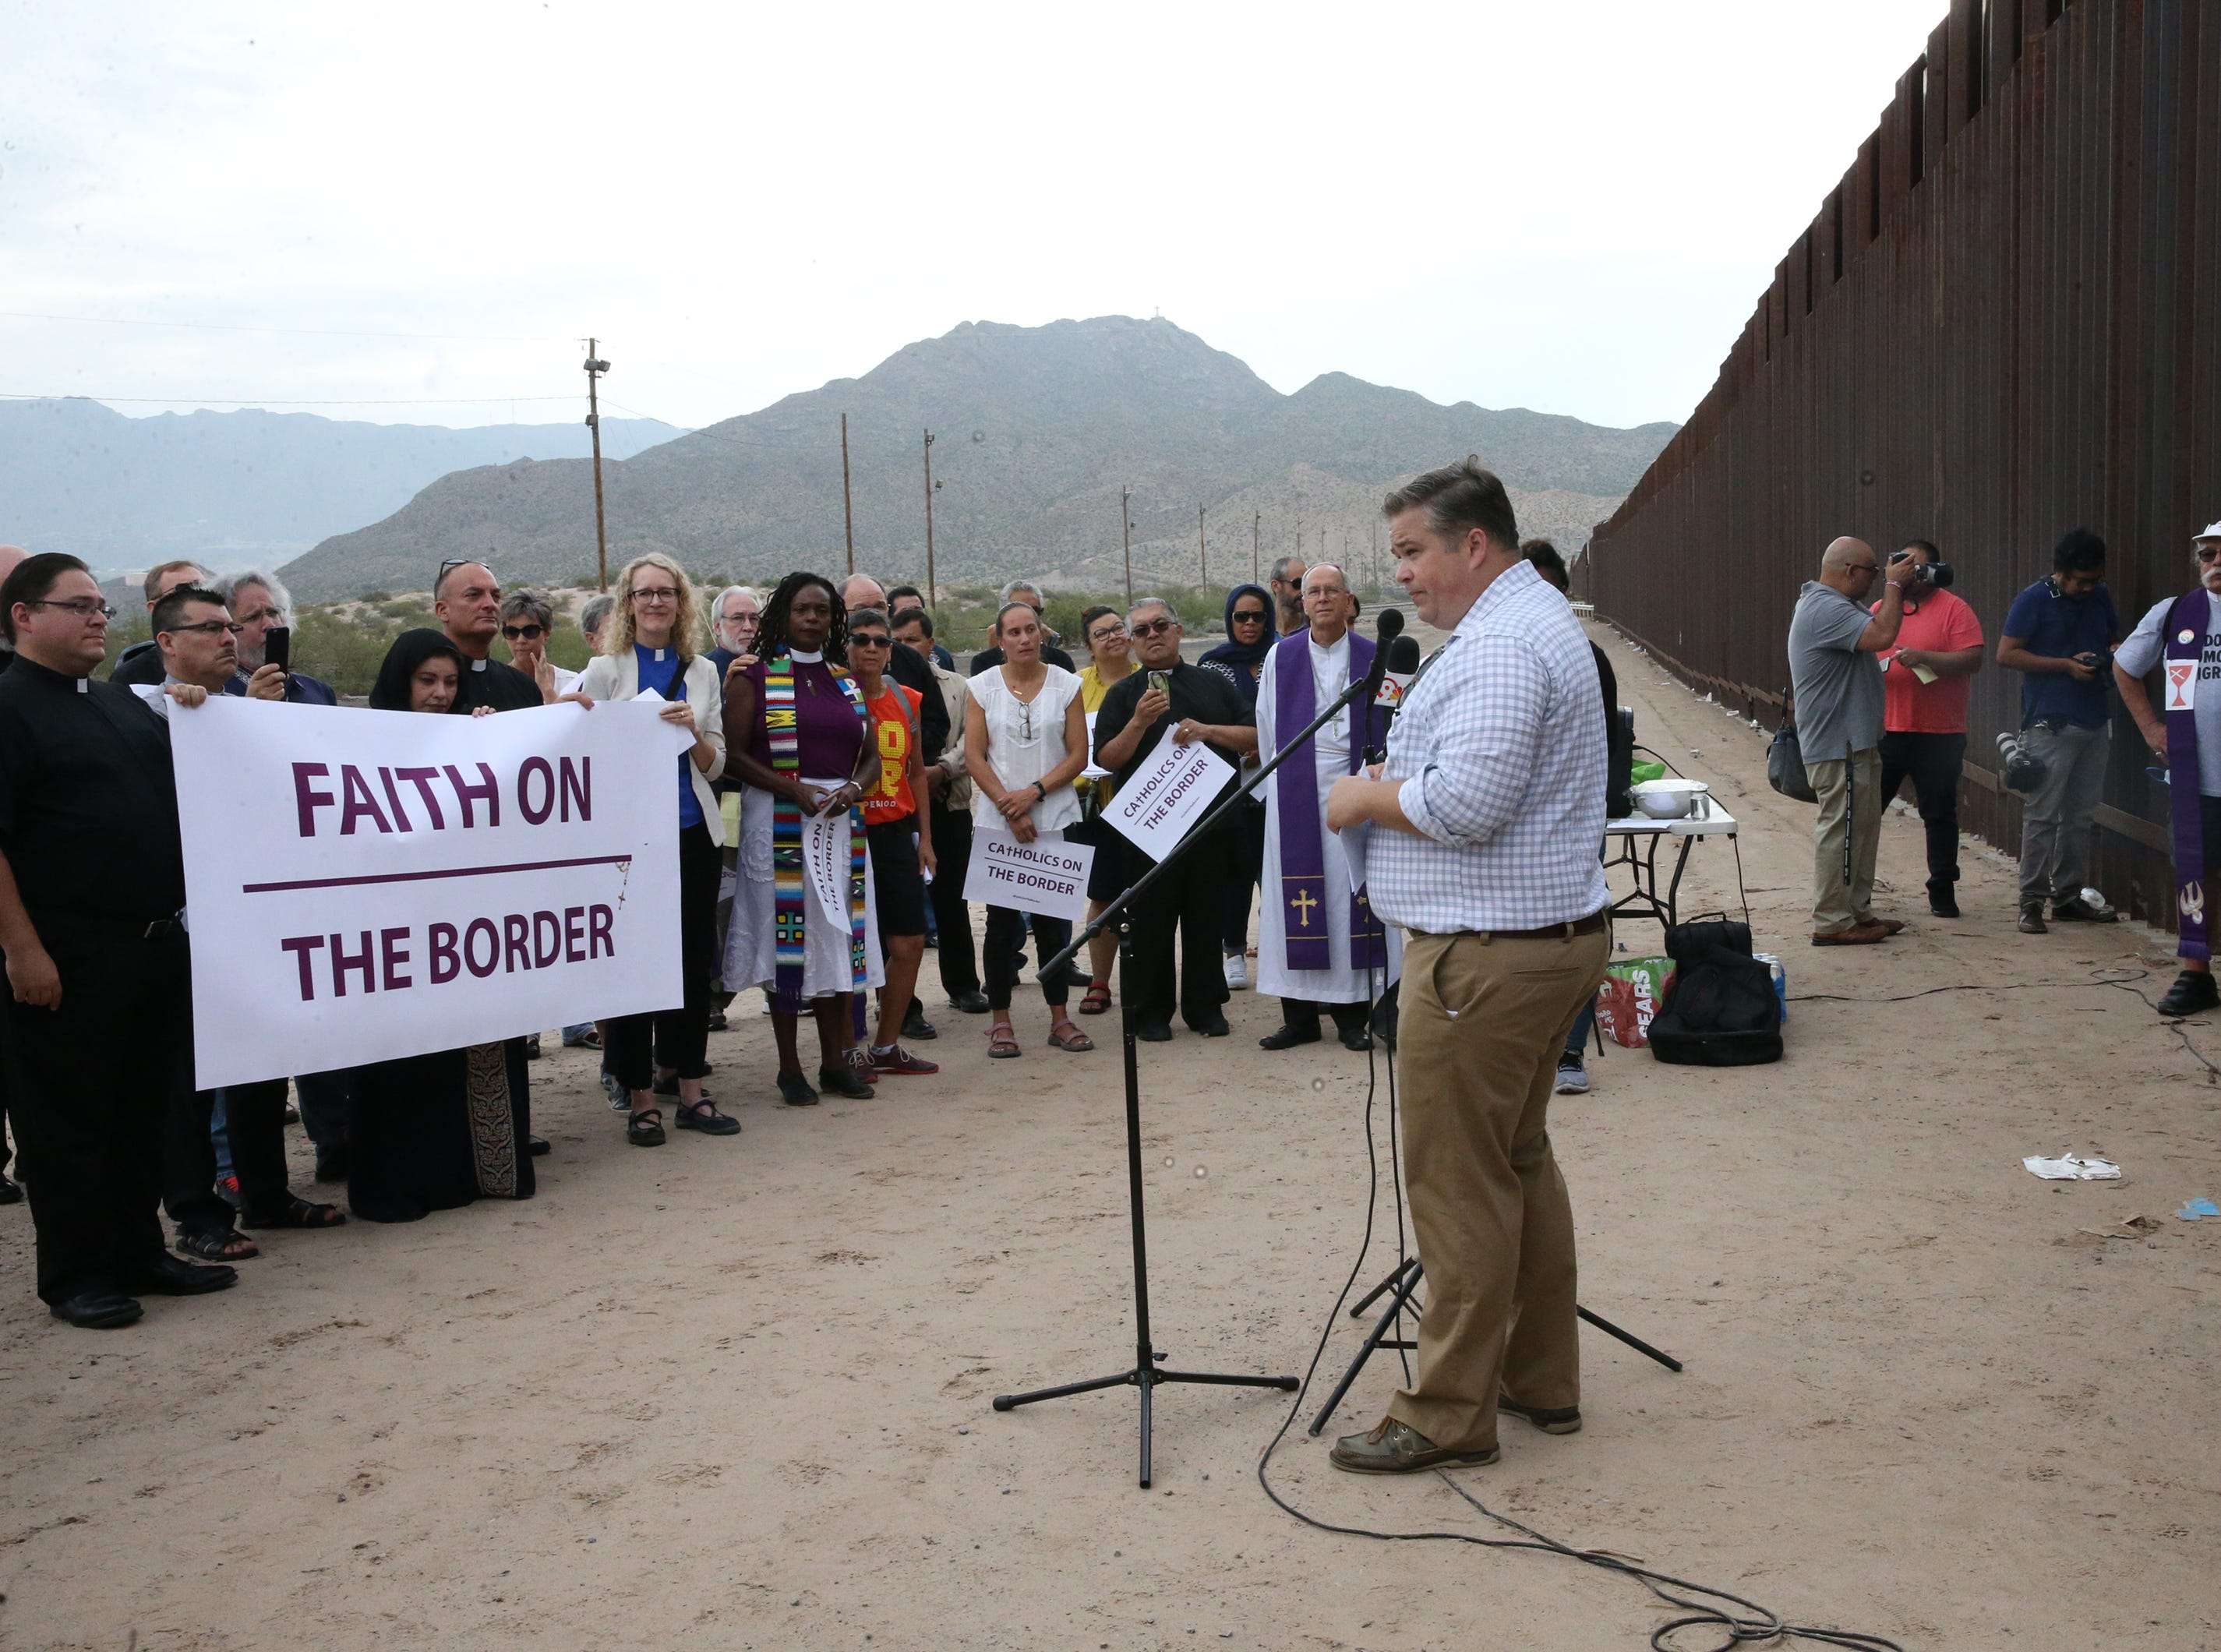 Dylan Corbett, executive director of Hope Border Institute speaks to an interfaith gathering of clergy at the border fence in Sunland Park, N.M. Friday.